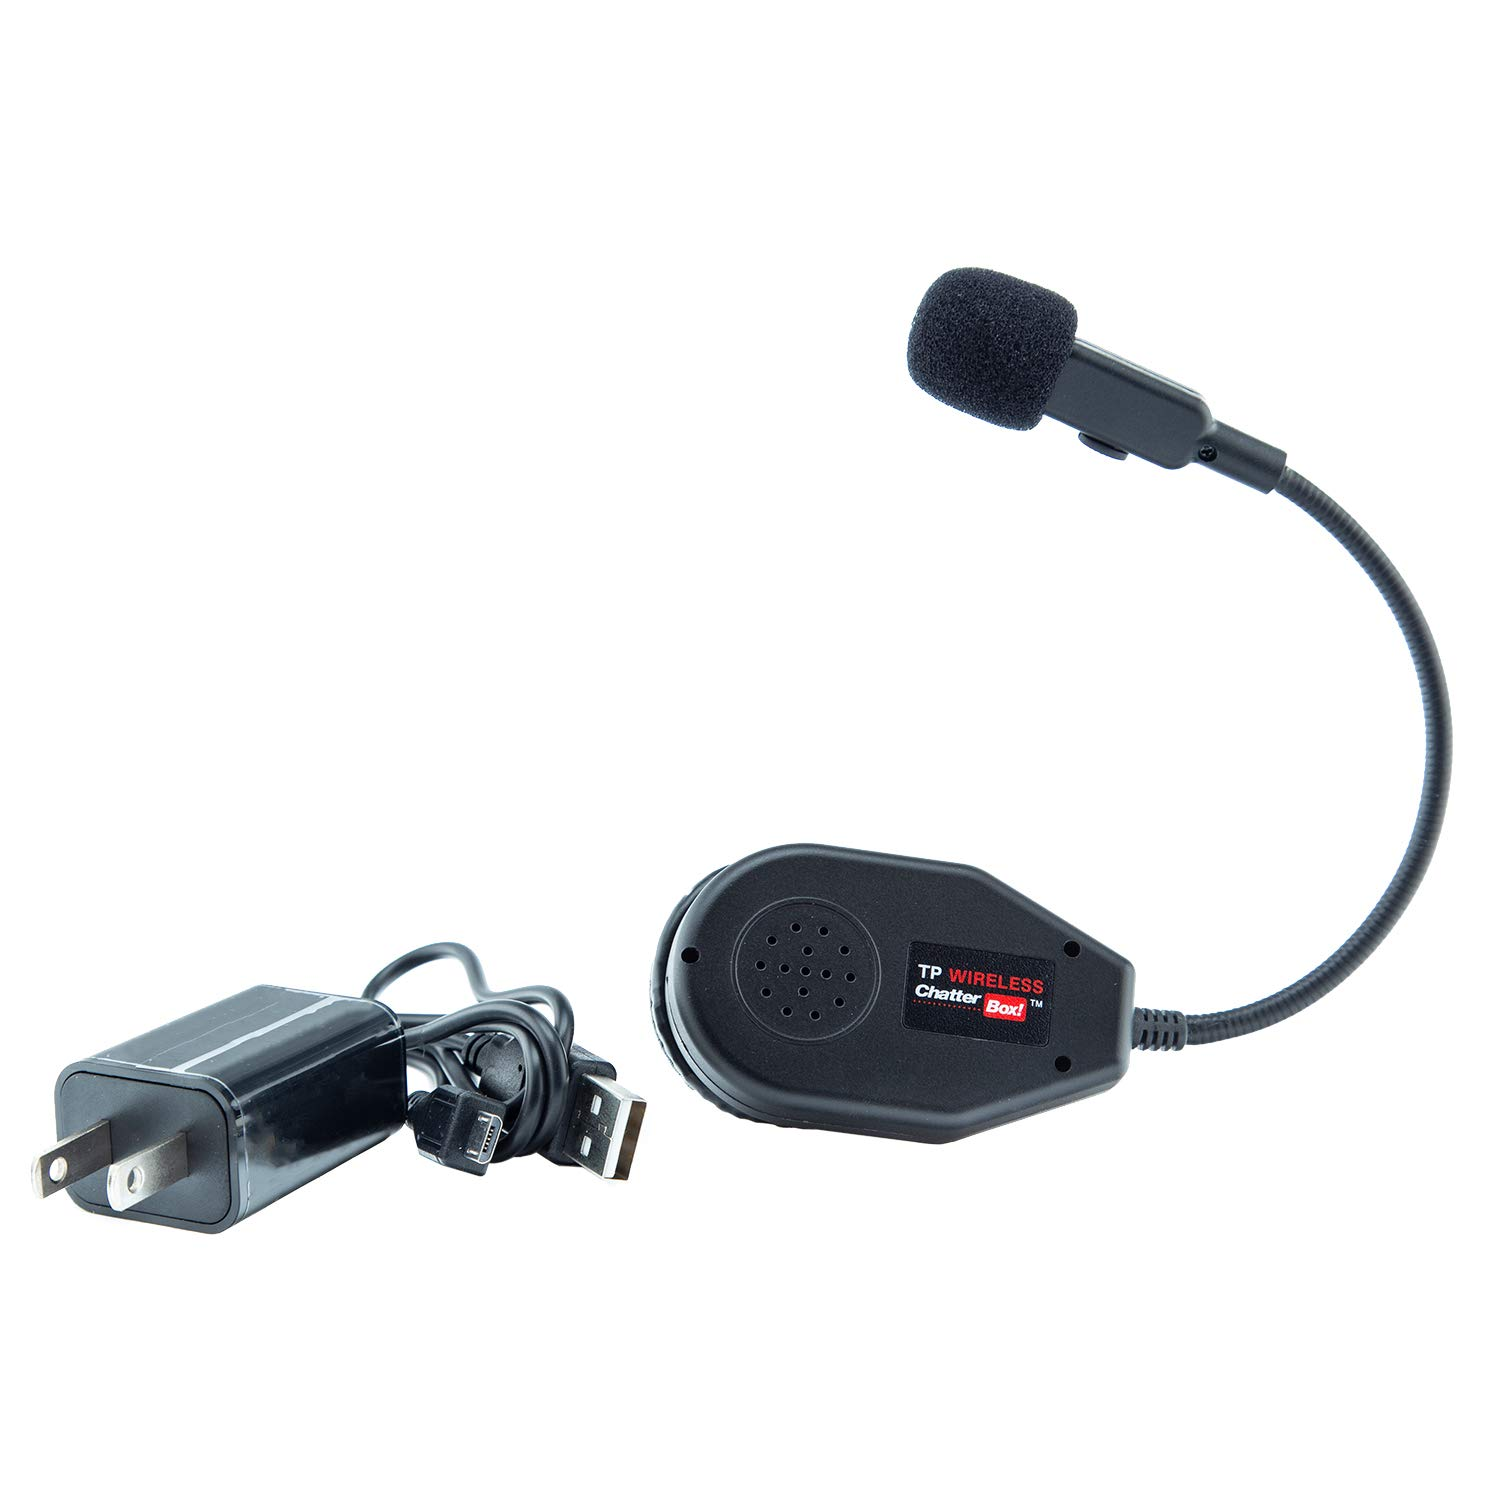 Chaterbox CBTPWHS Tandem Pro WIreless Headset